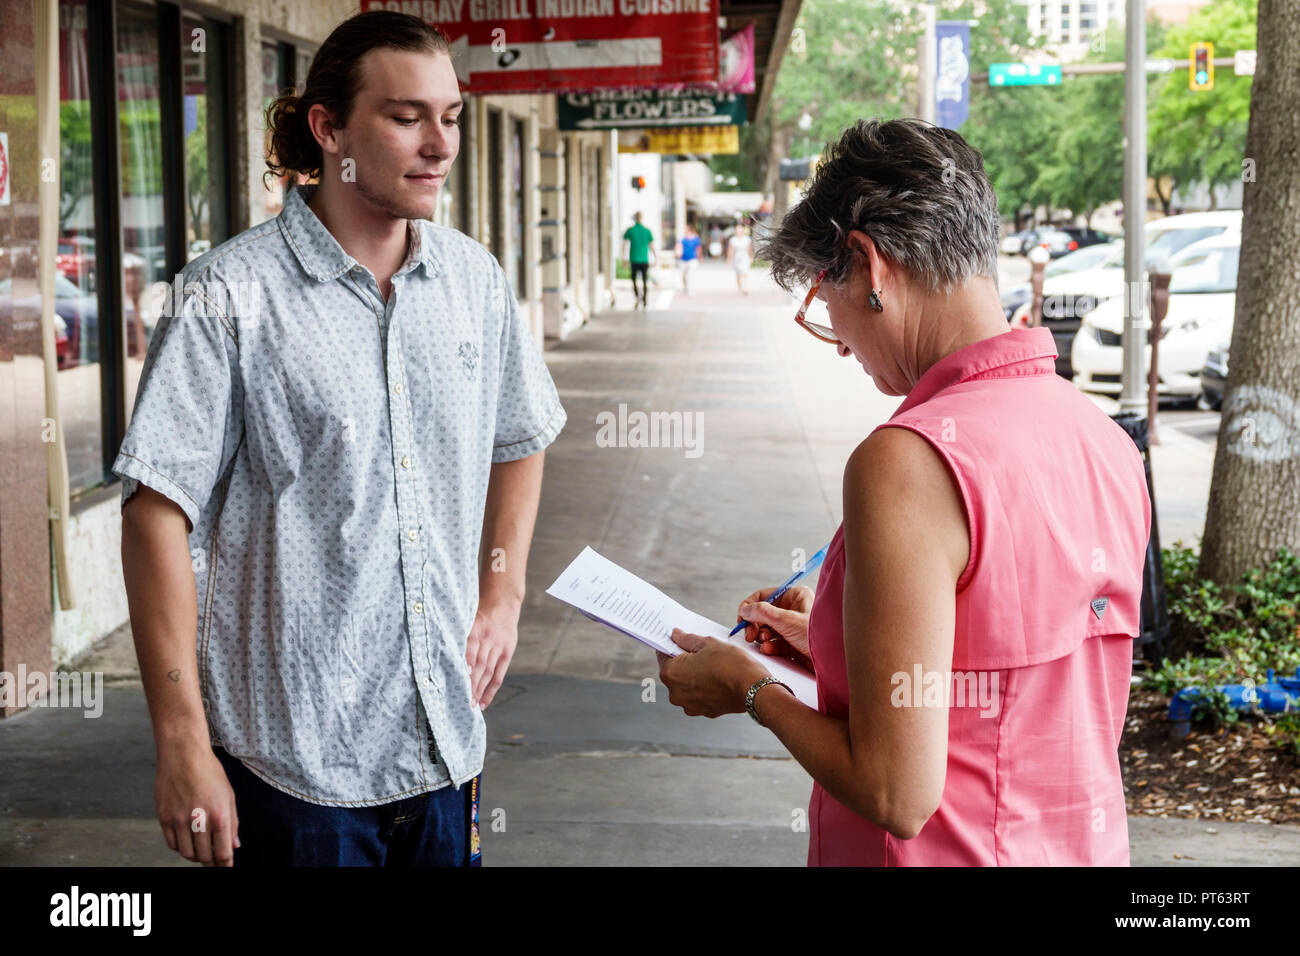 St. Saint Petersburg Florida Central Avenue survey questionnaire opinion poll woman man asking questions street sidewalk Stock Photo